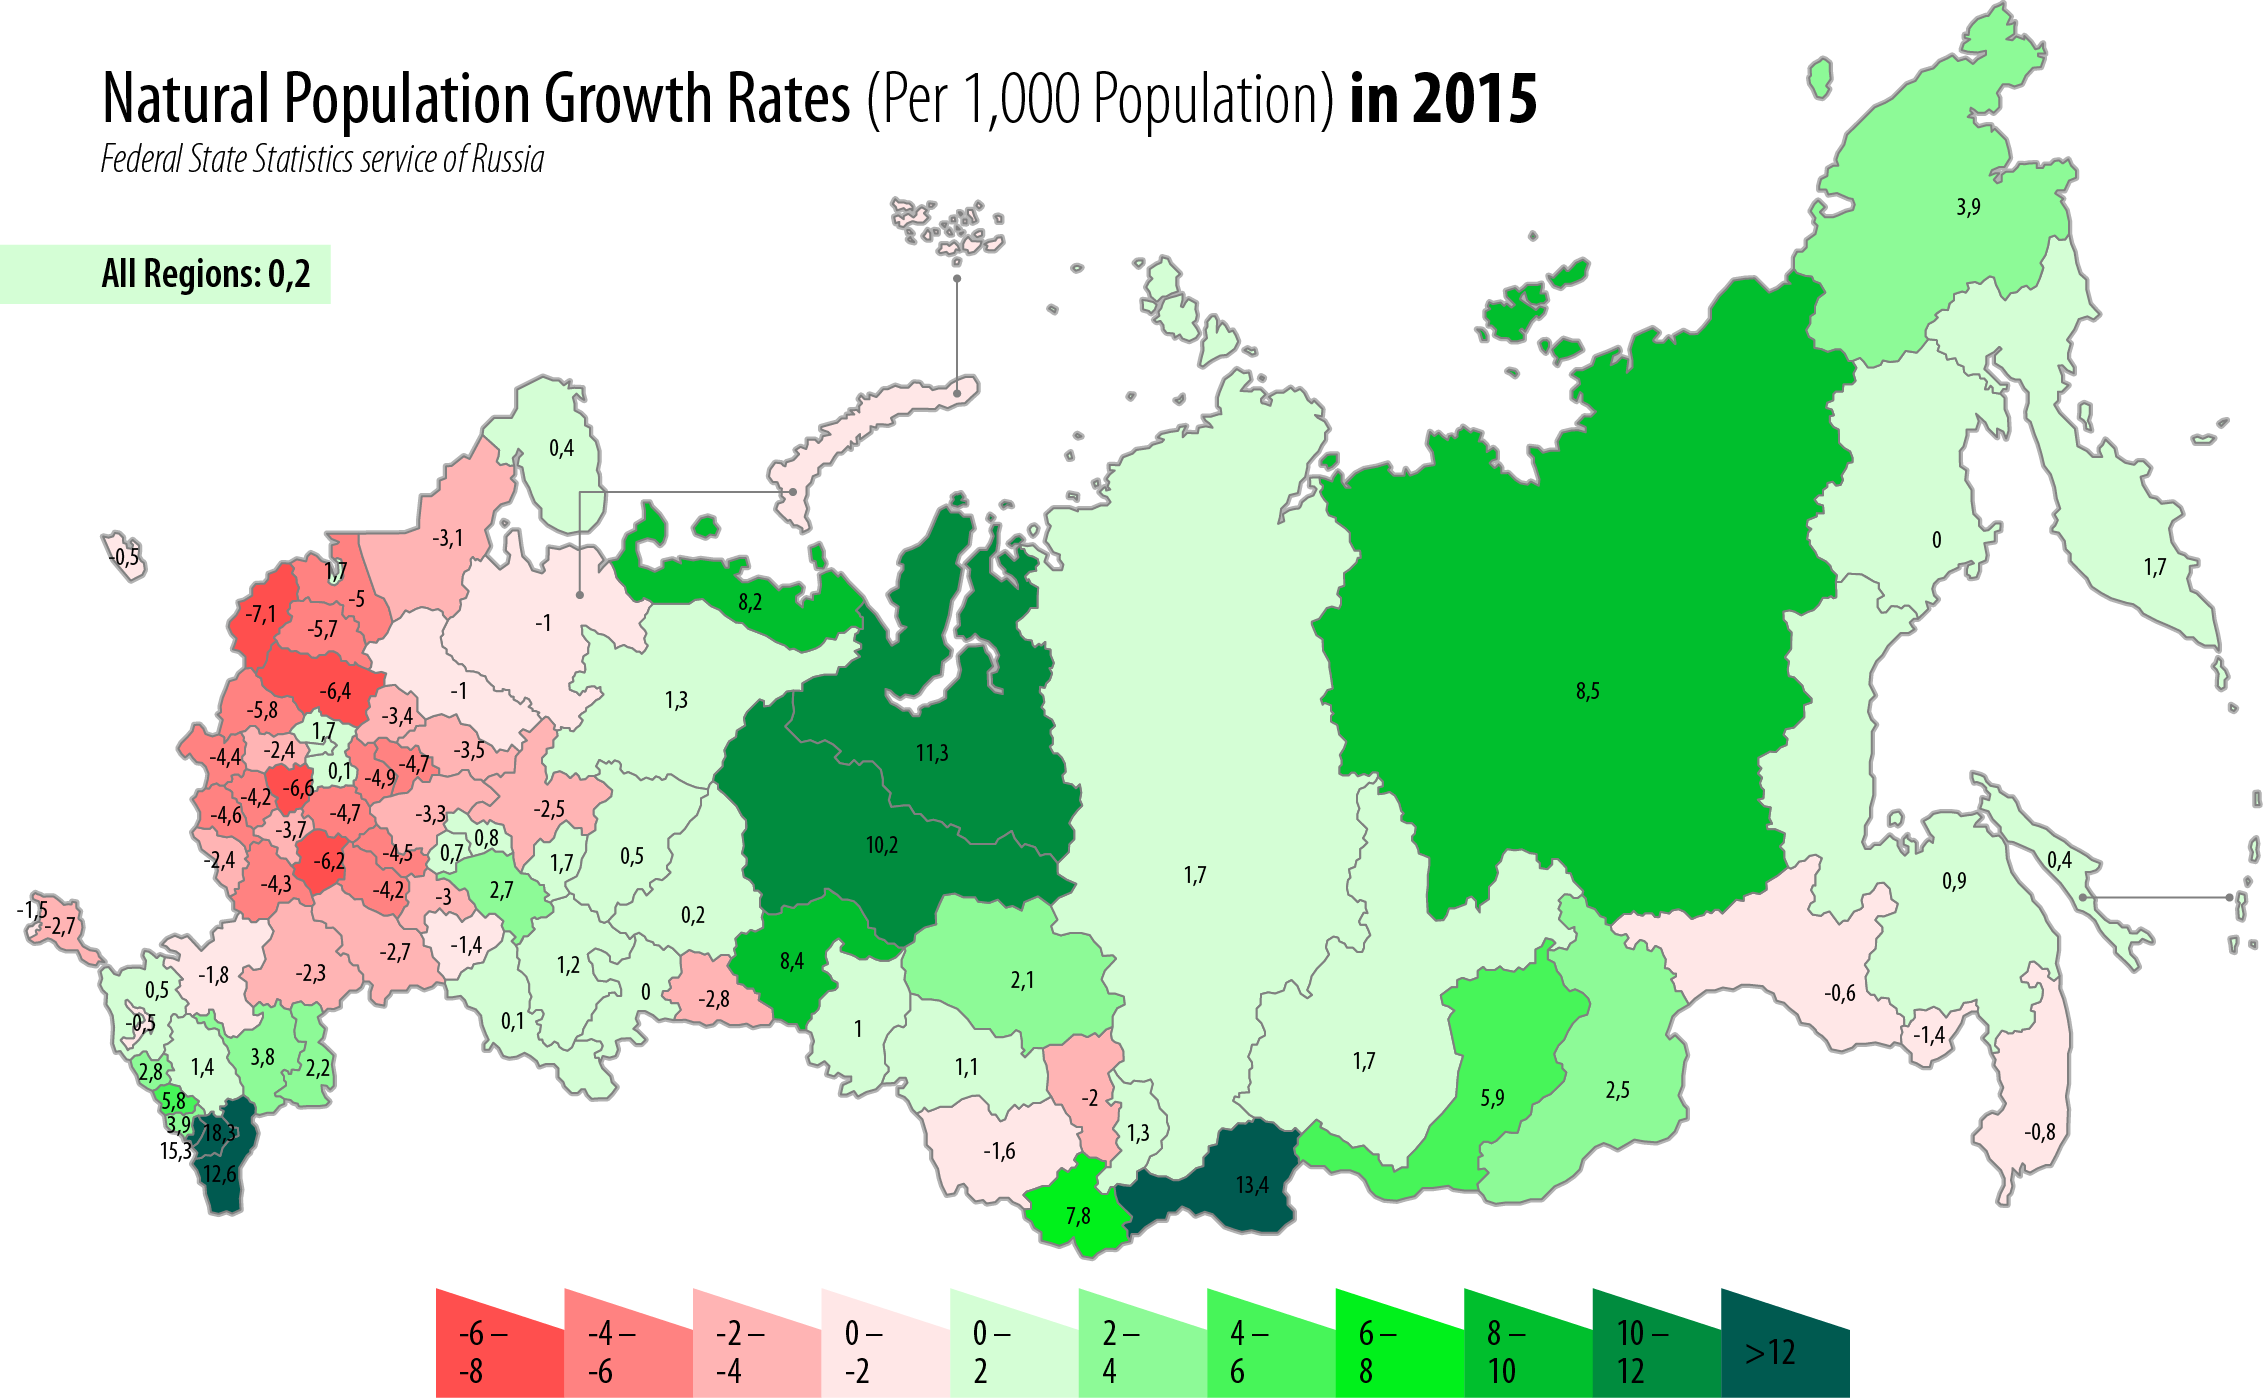 Russia natural population growth rates 2015